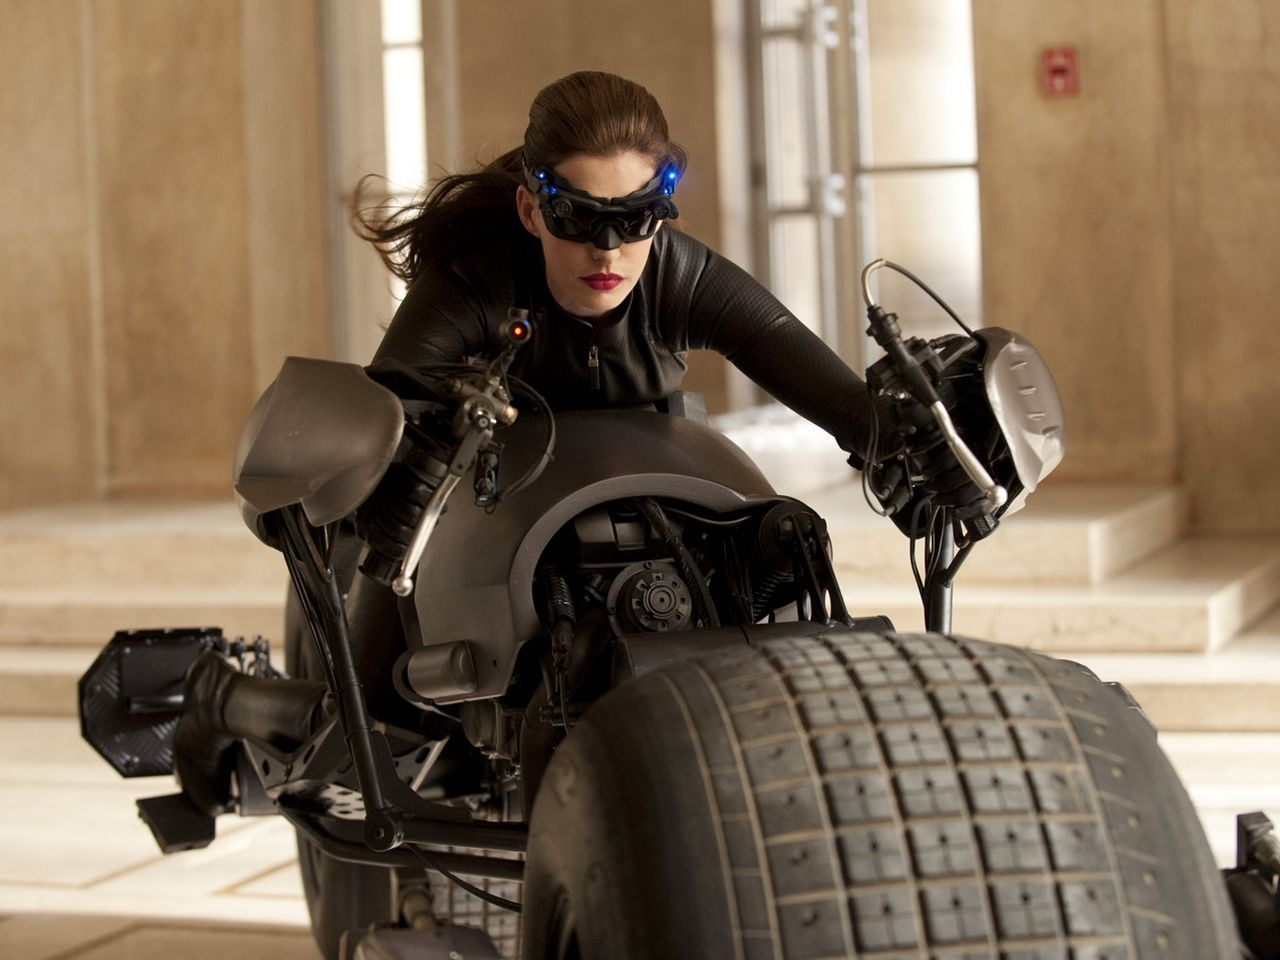 33139 download wallpaper Cinema, People, Actors, Batman, Anne Hathaway screensavers and pictures for free